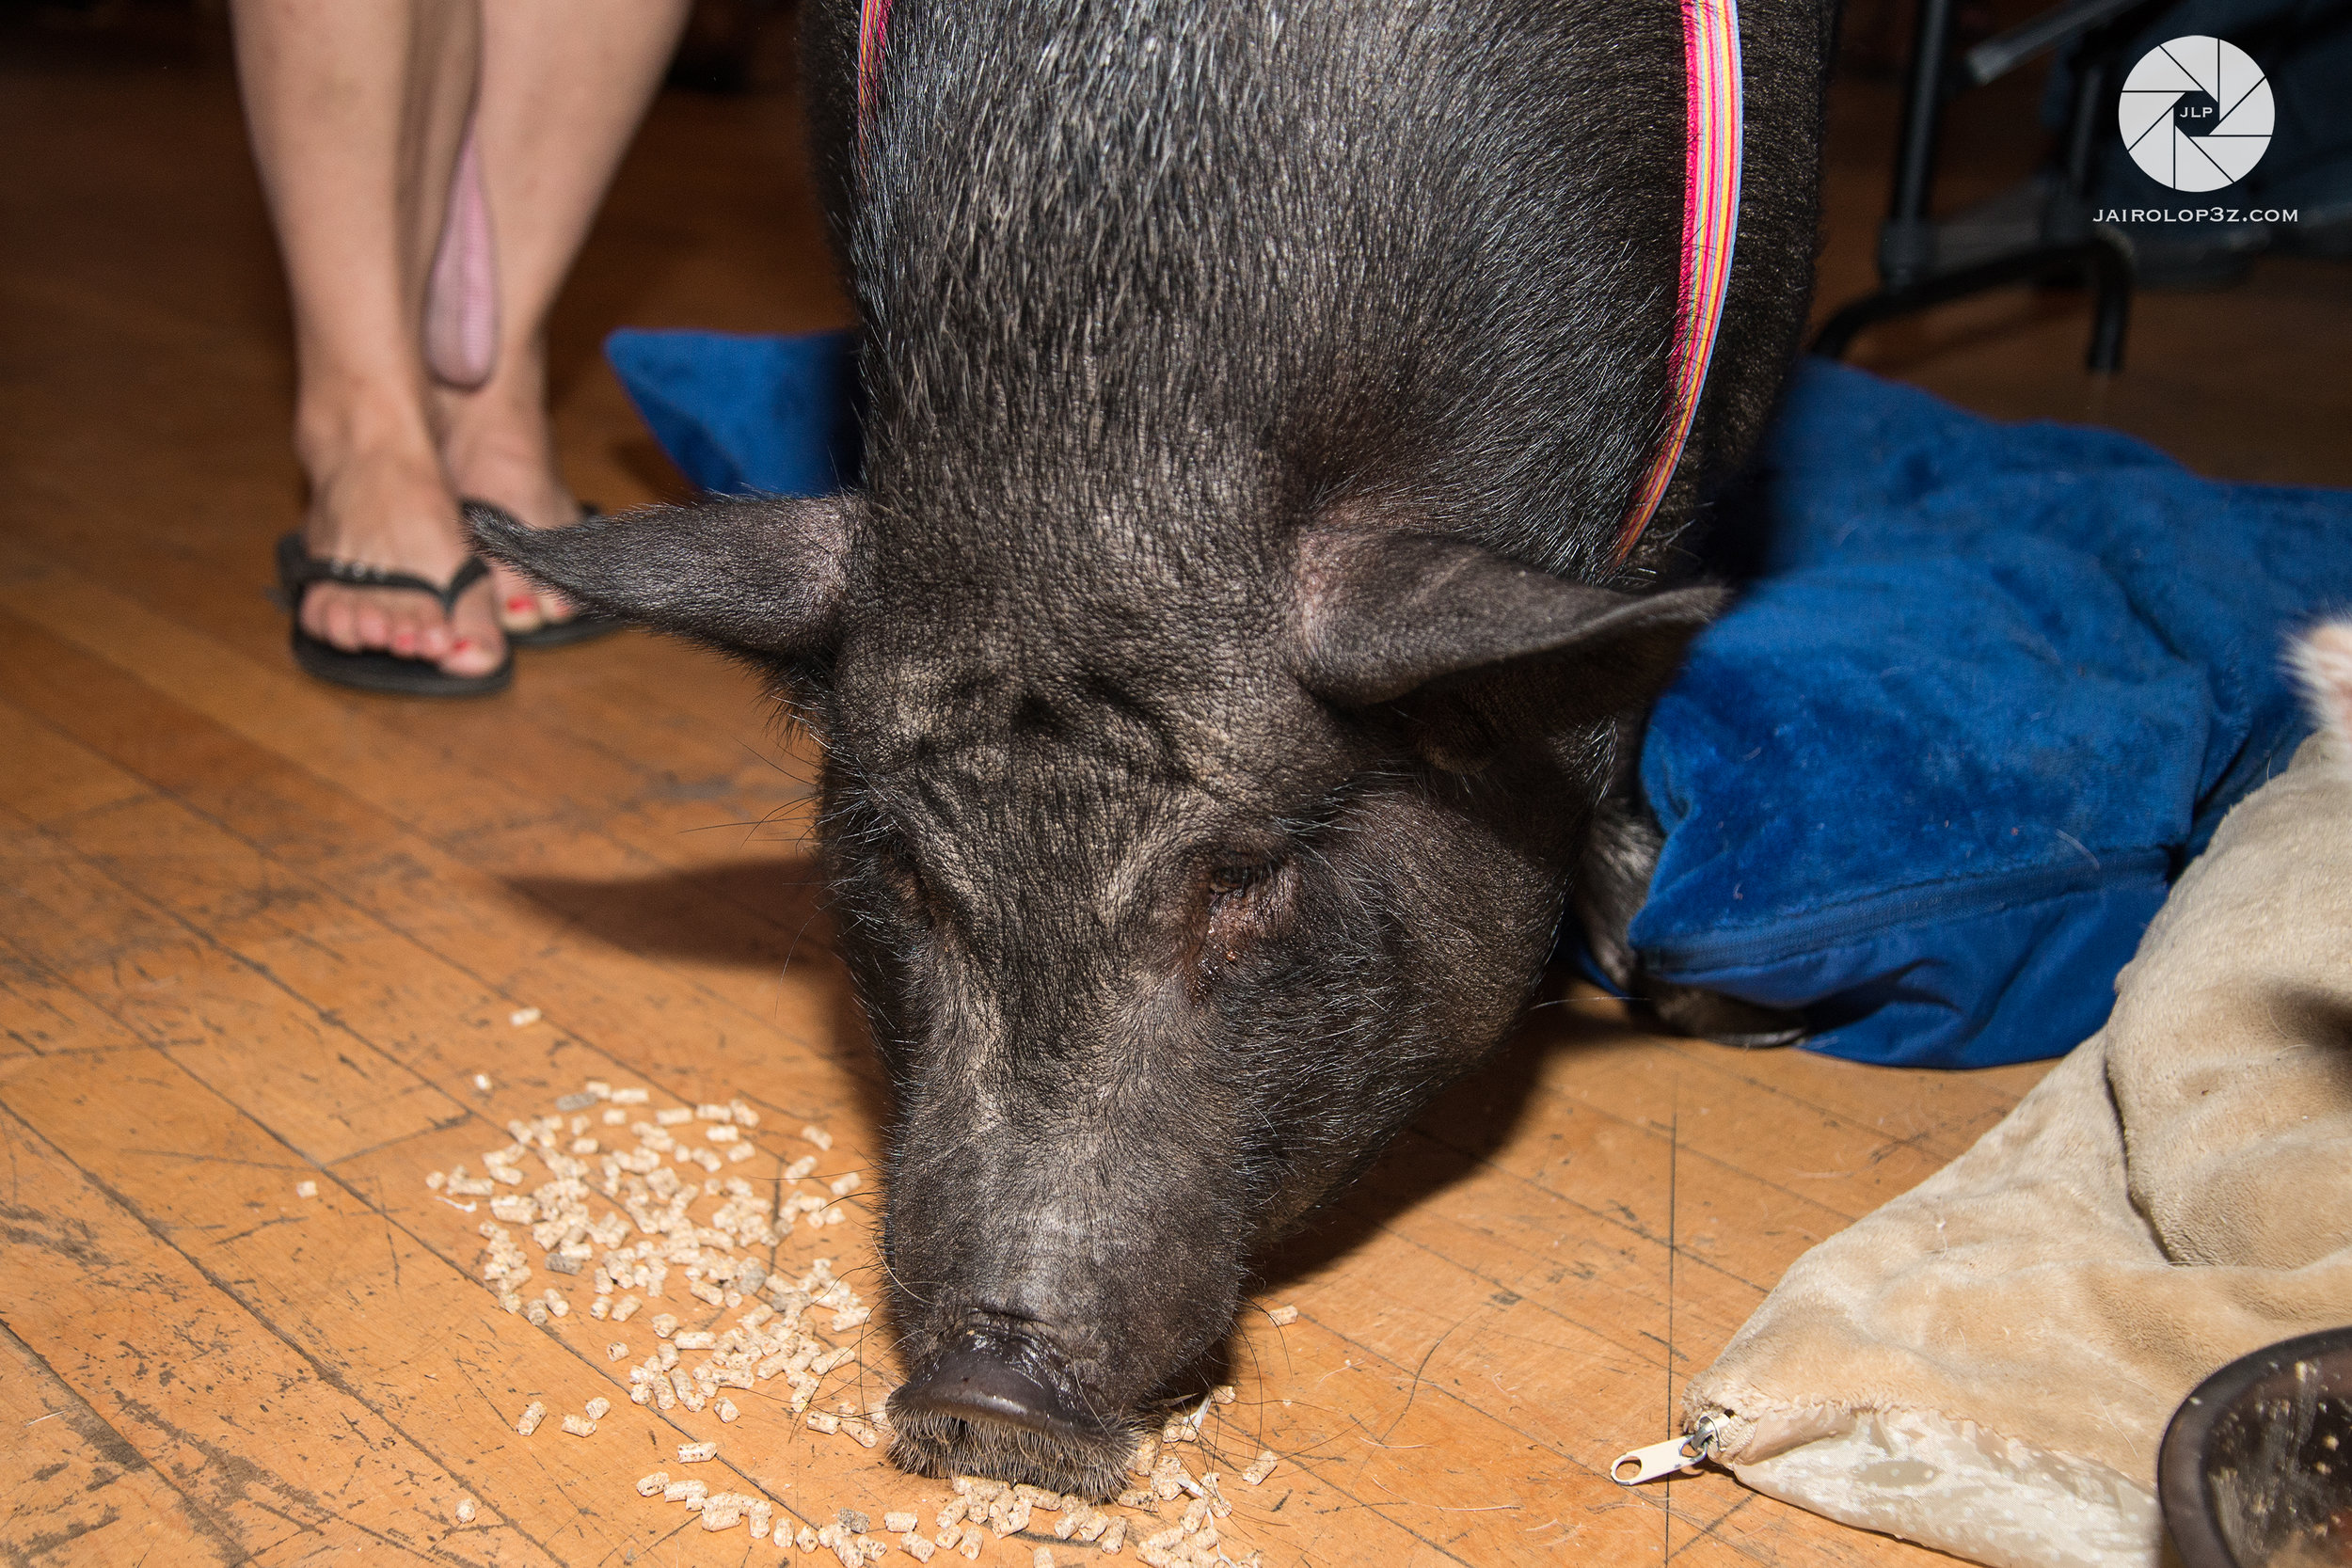 We were thrilled to have the rescue pigs of  @citypigsto  joining at the Vegan Social Pop-Up Event, including Persephone, the friendliest potbelly, pictured above.  Photo by:    Jairo Lop3z Productions.